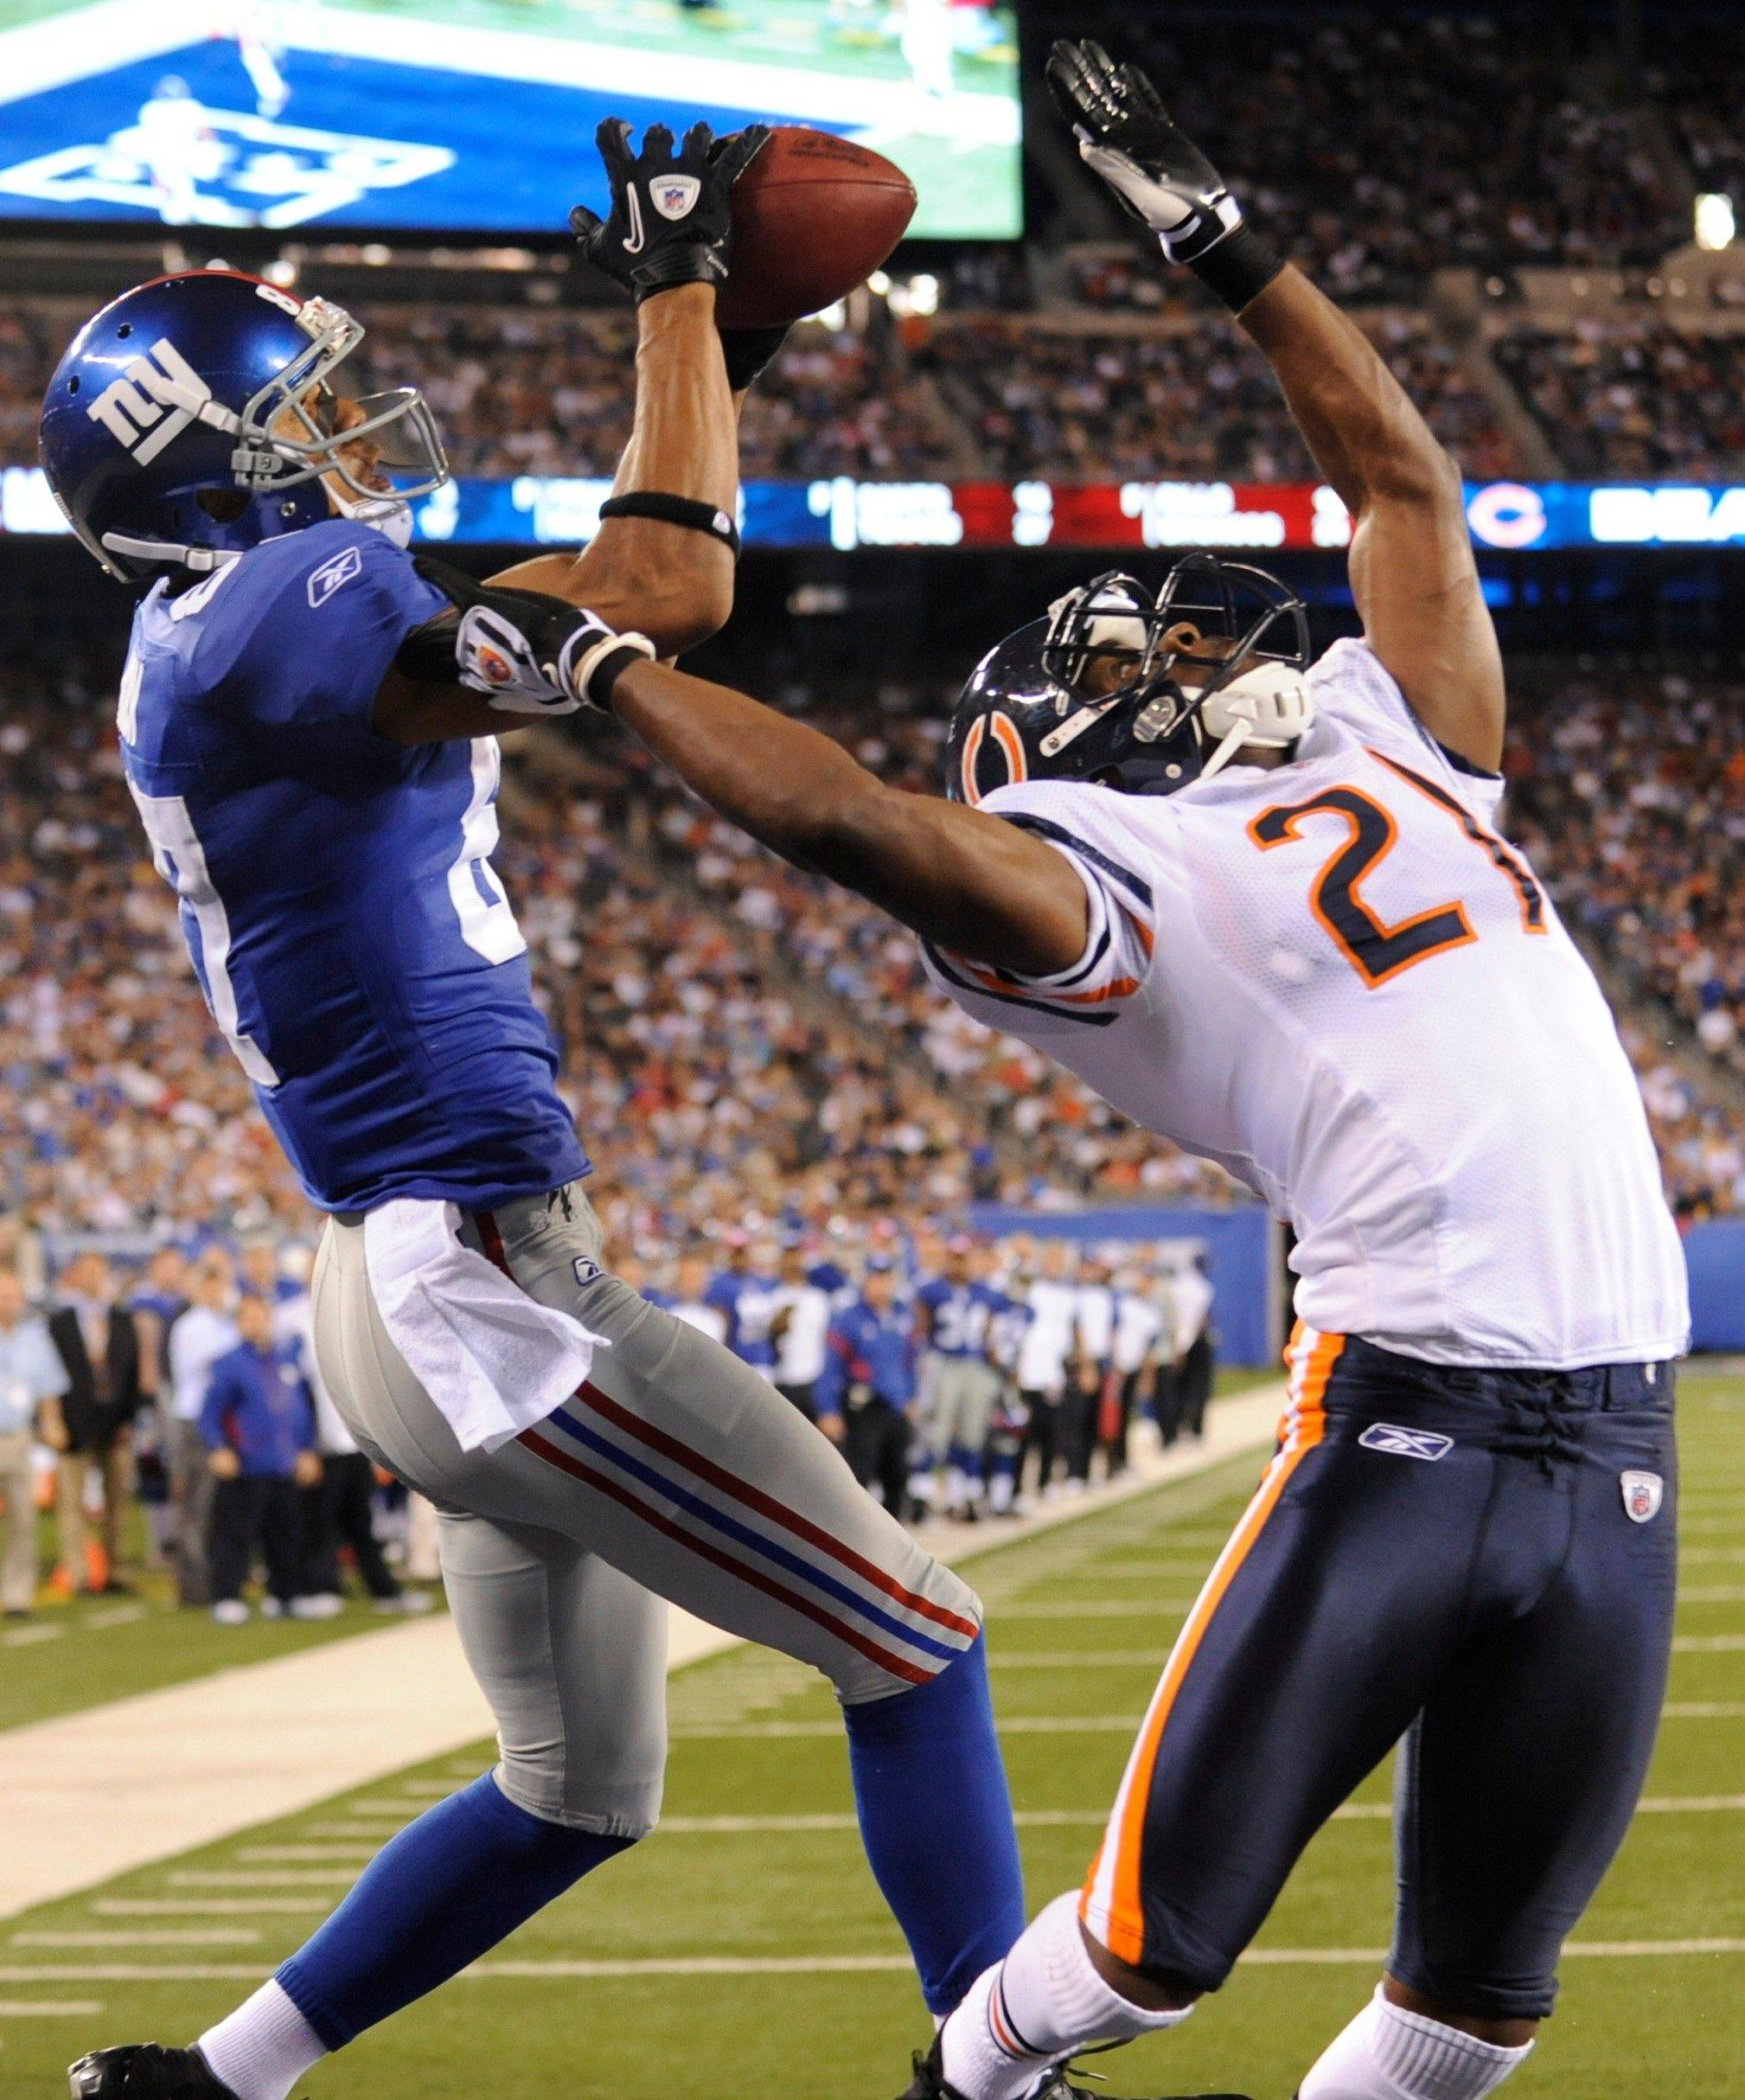 Giants wide receiver Domenik Hixon catches a touchdown pass over Bears cornerback Corey Graham during the second quarter of Monday night�s preseason game.